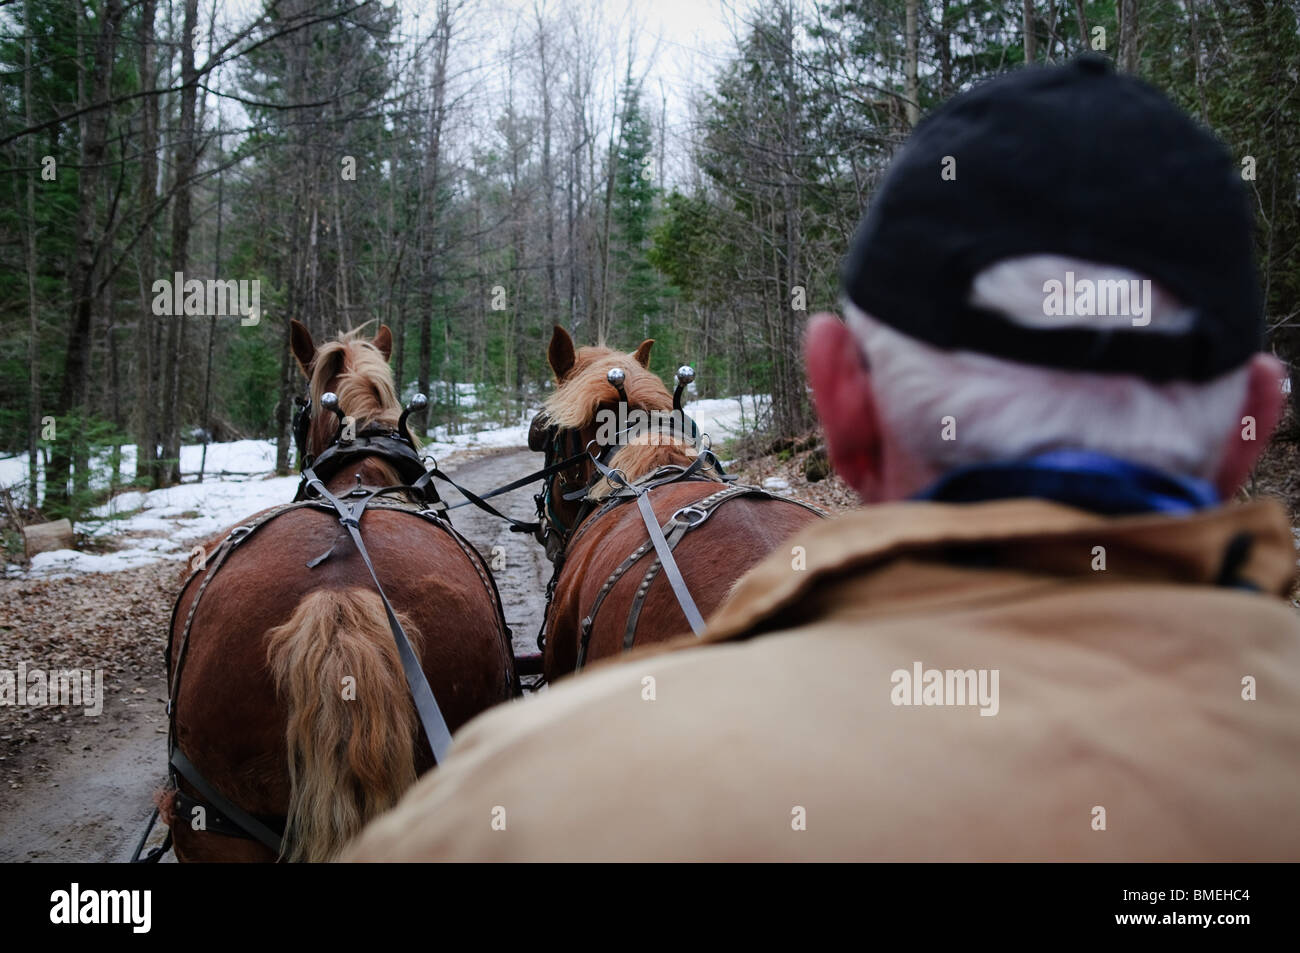 A traditional horse drawn carriage with driver and set of horses in wooded area. - Stock Image